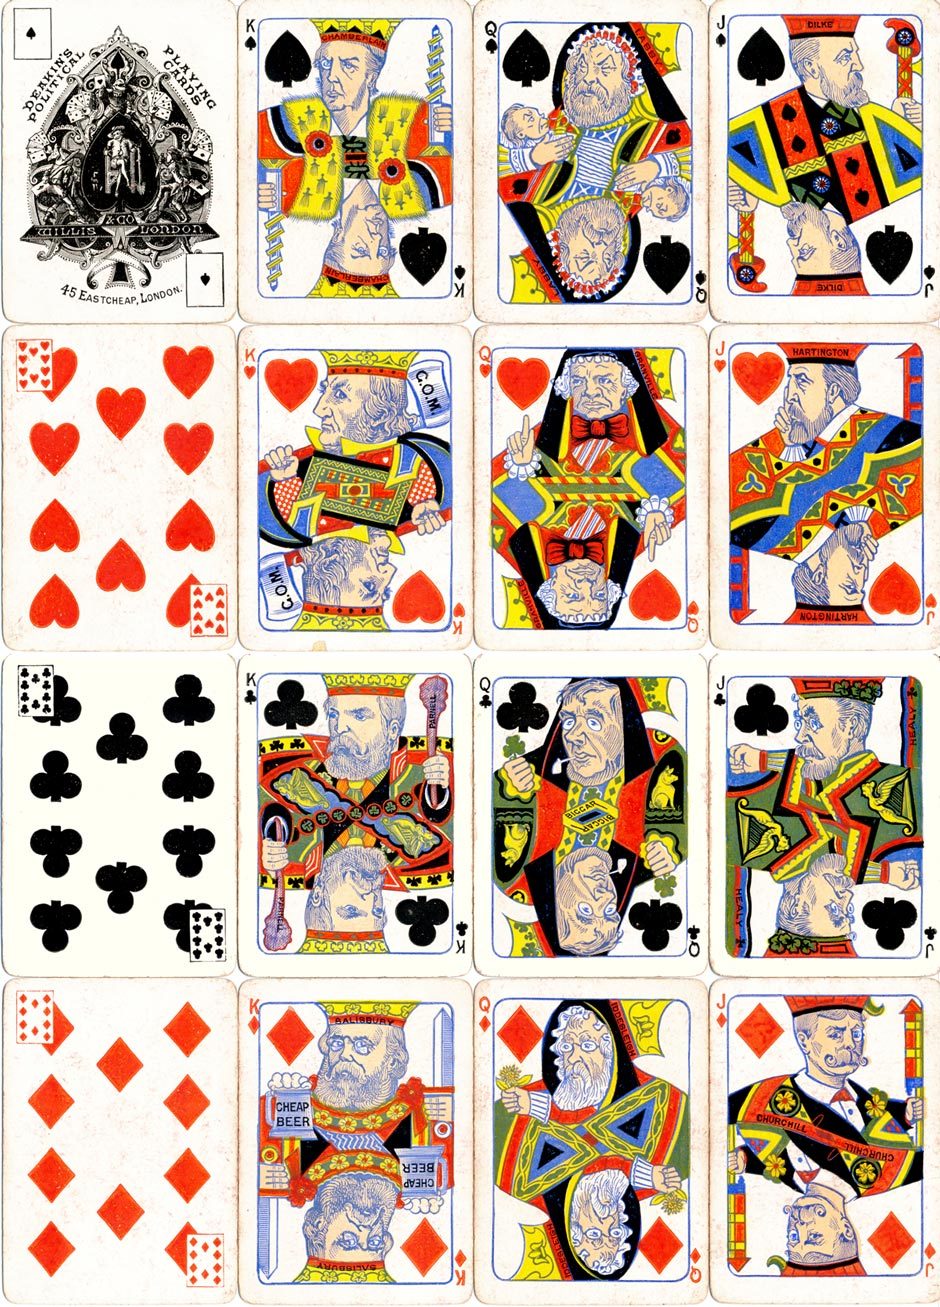 Deakin's Political Playing Cards, 1st edition, 1886